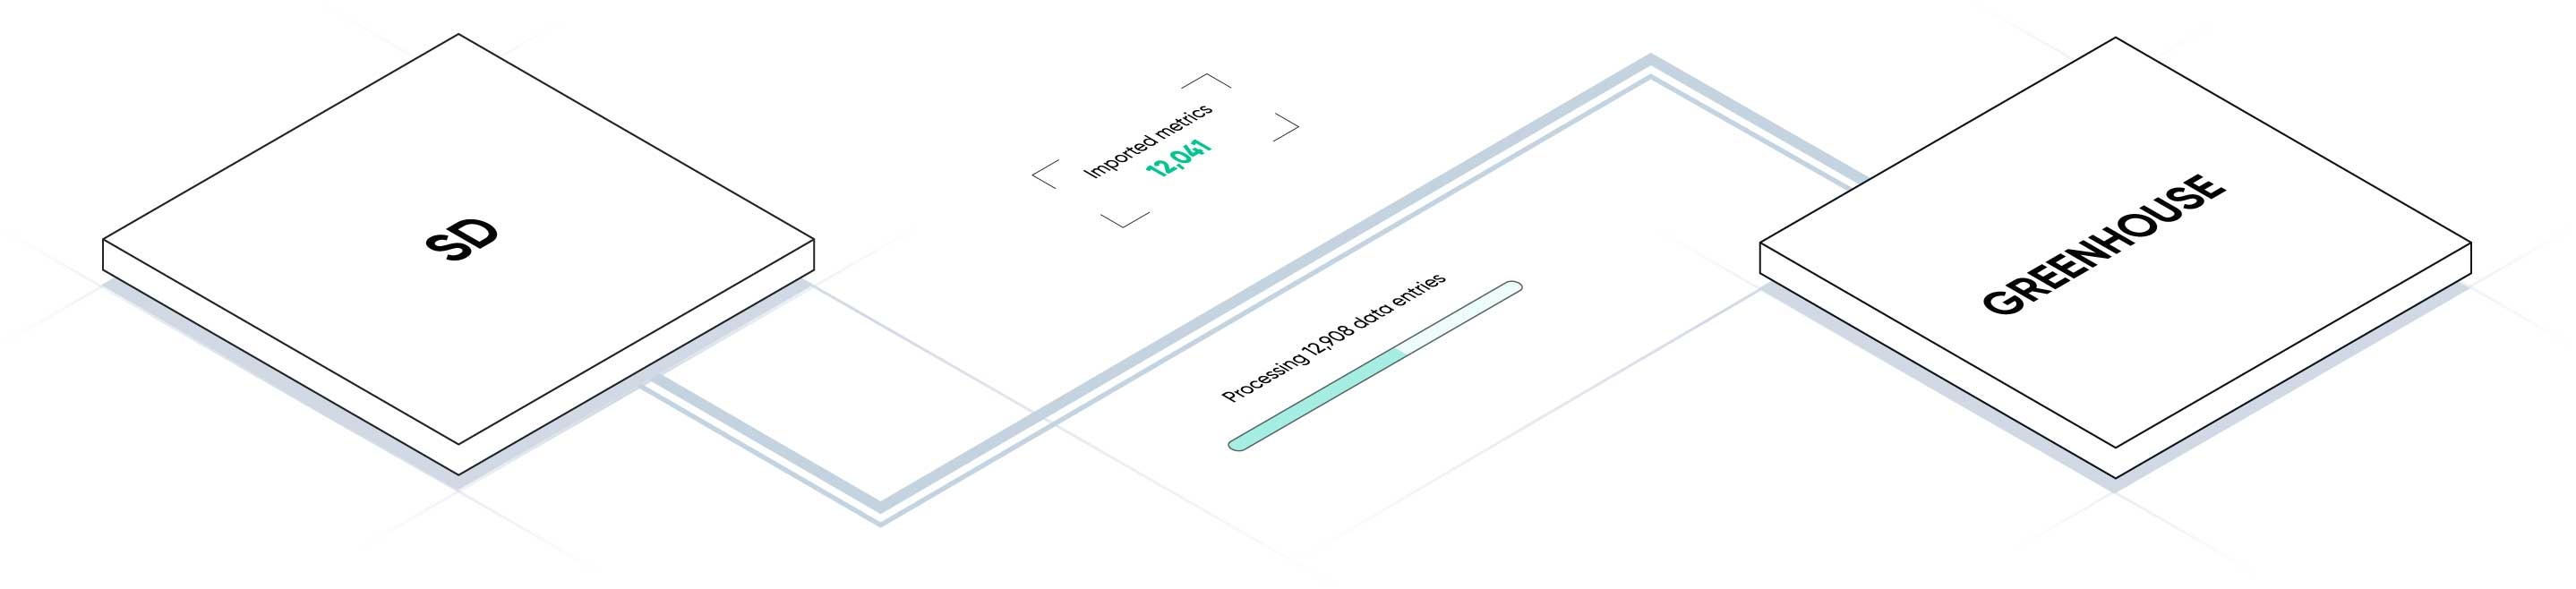 adswizz-integration